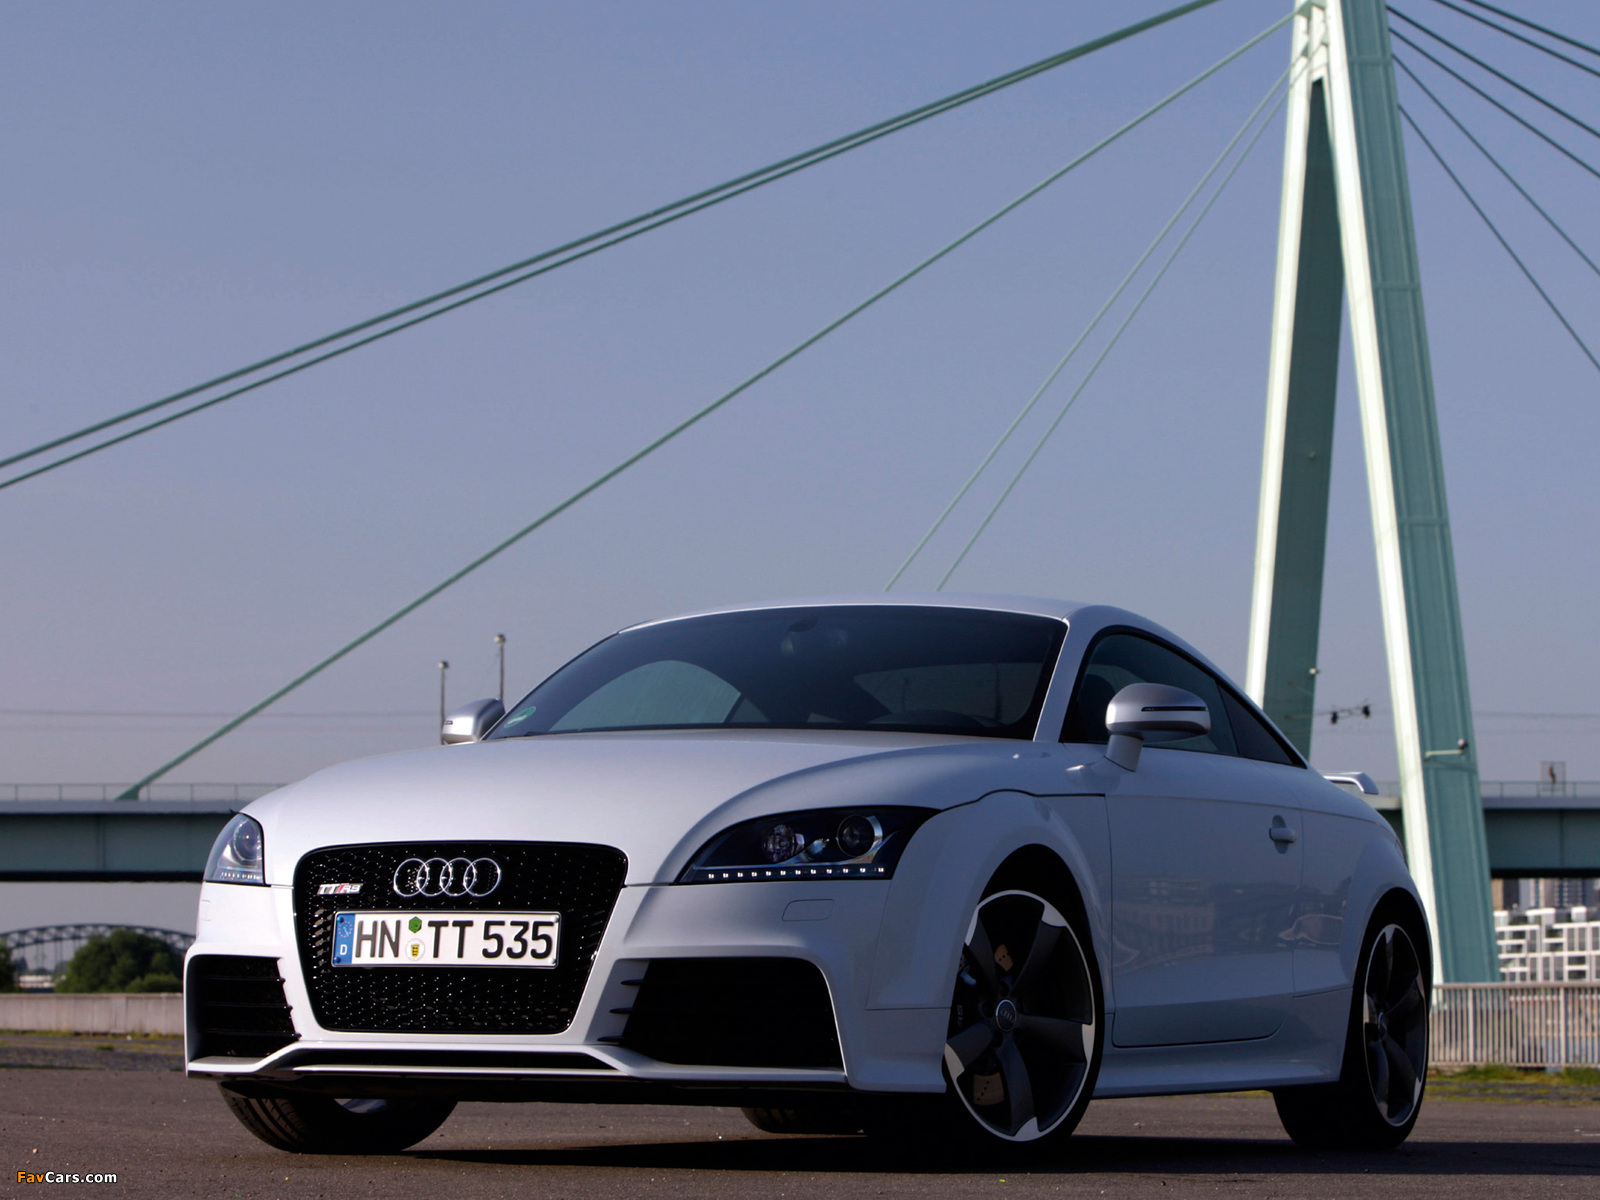 Audi TT RS Coupe (8J) 2009 photos (1600x1200)